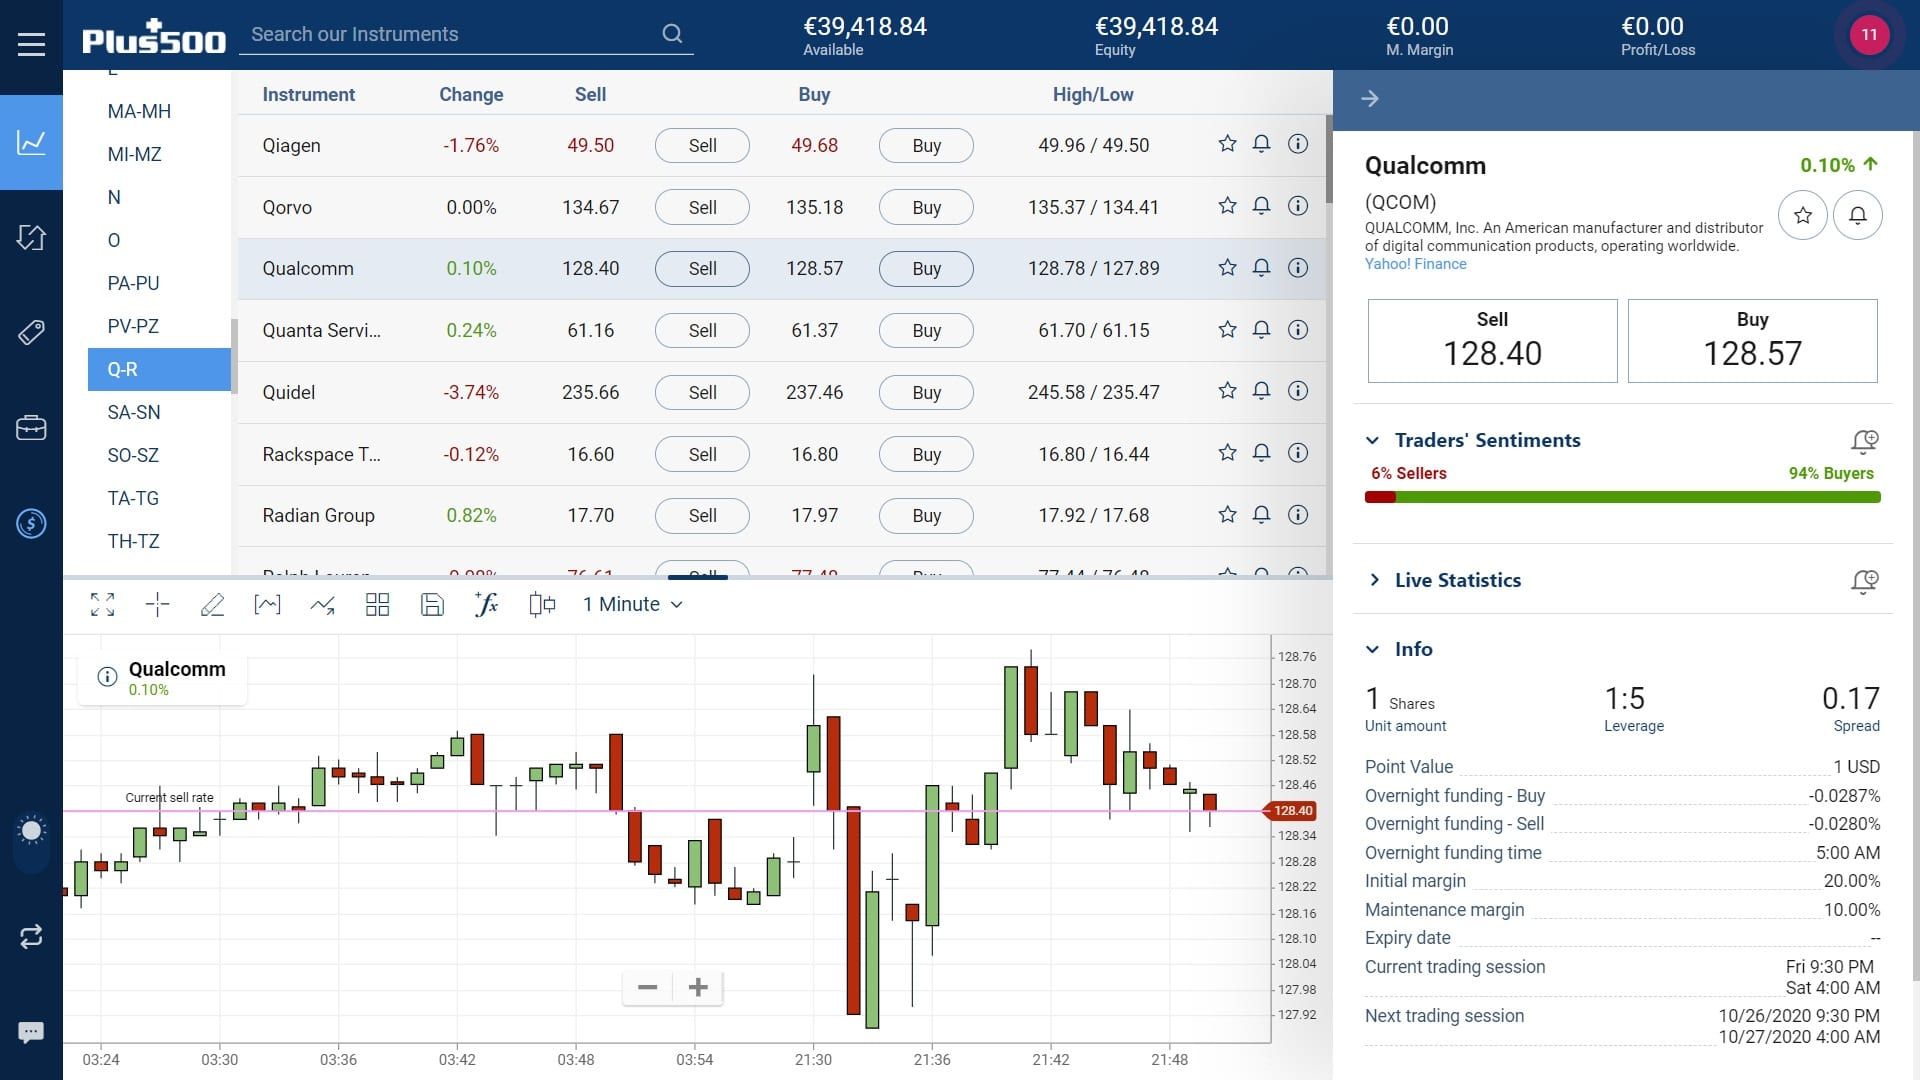 Qualcomm stock trading on Plus500's WebTrader platform